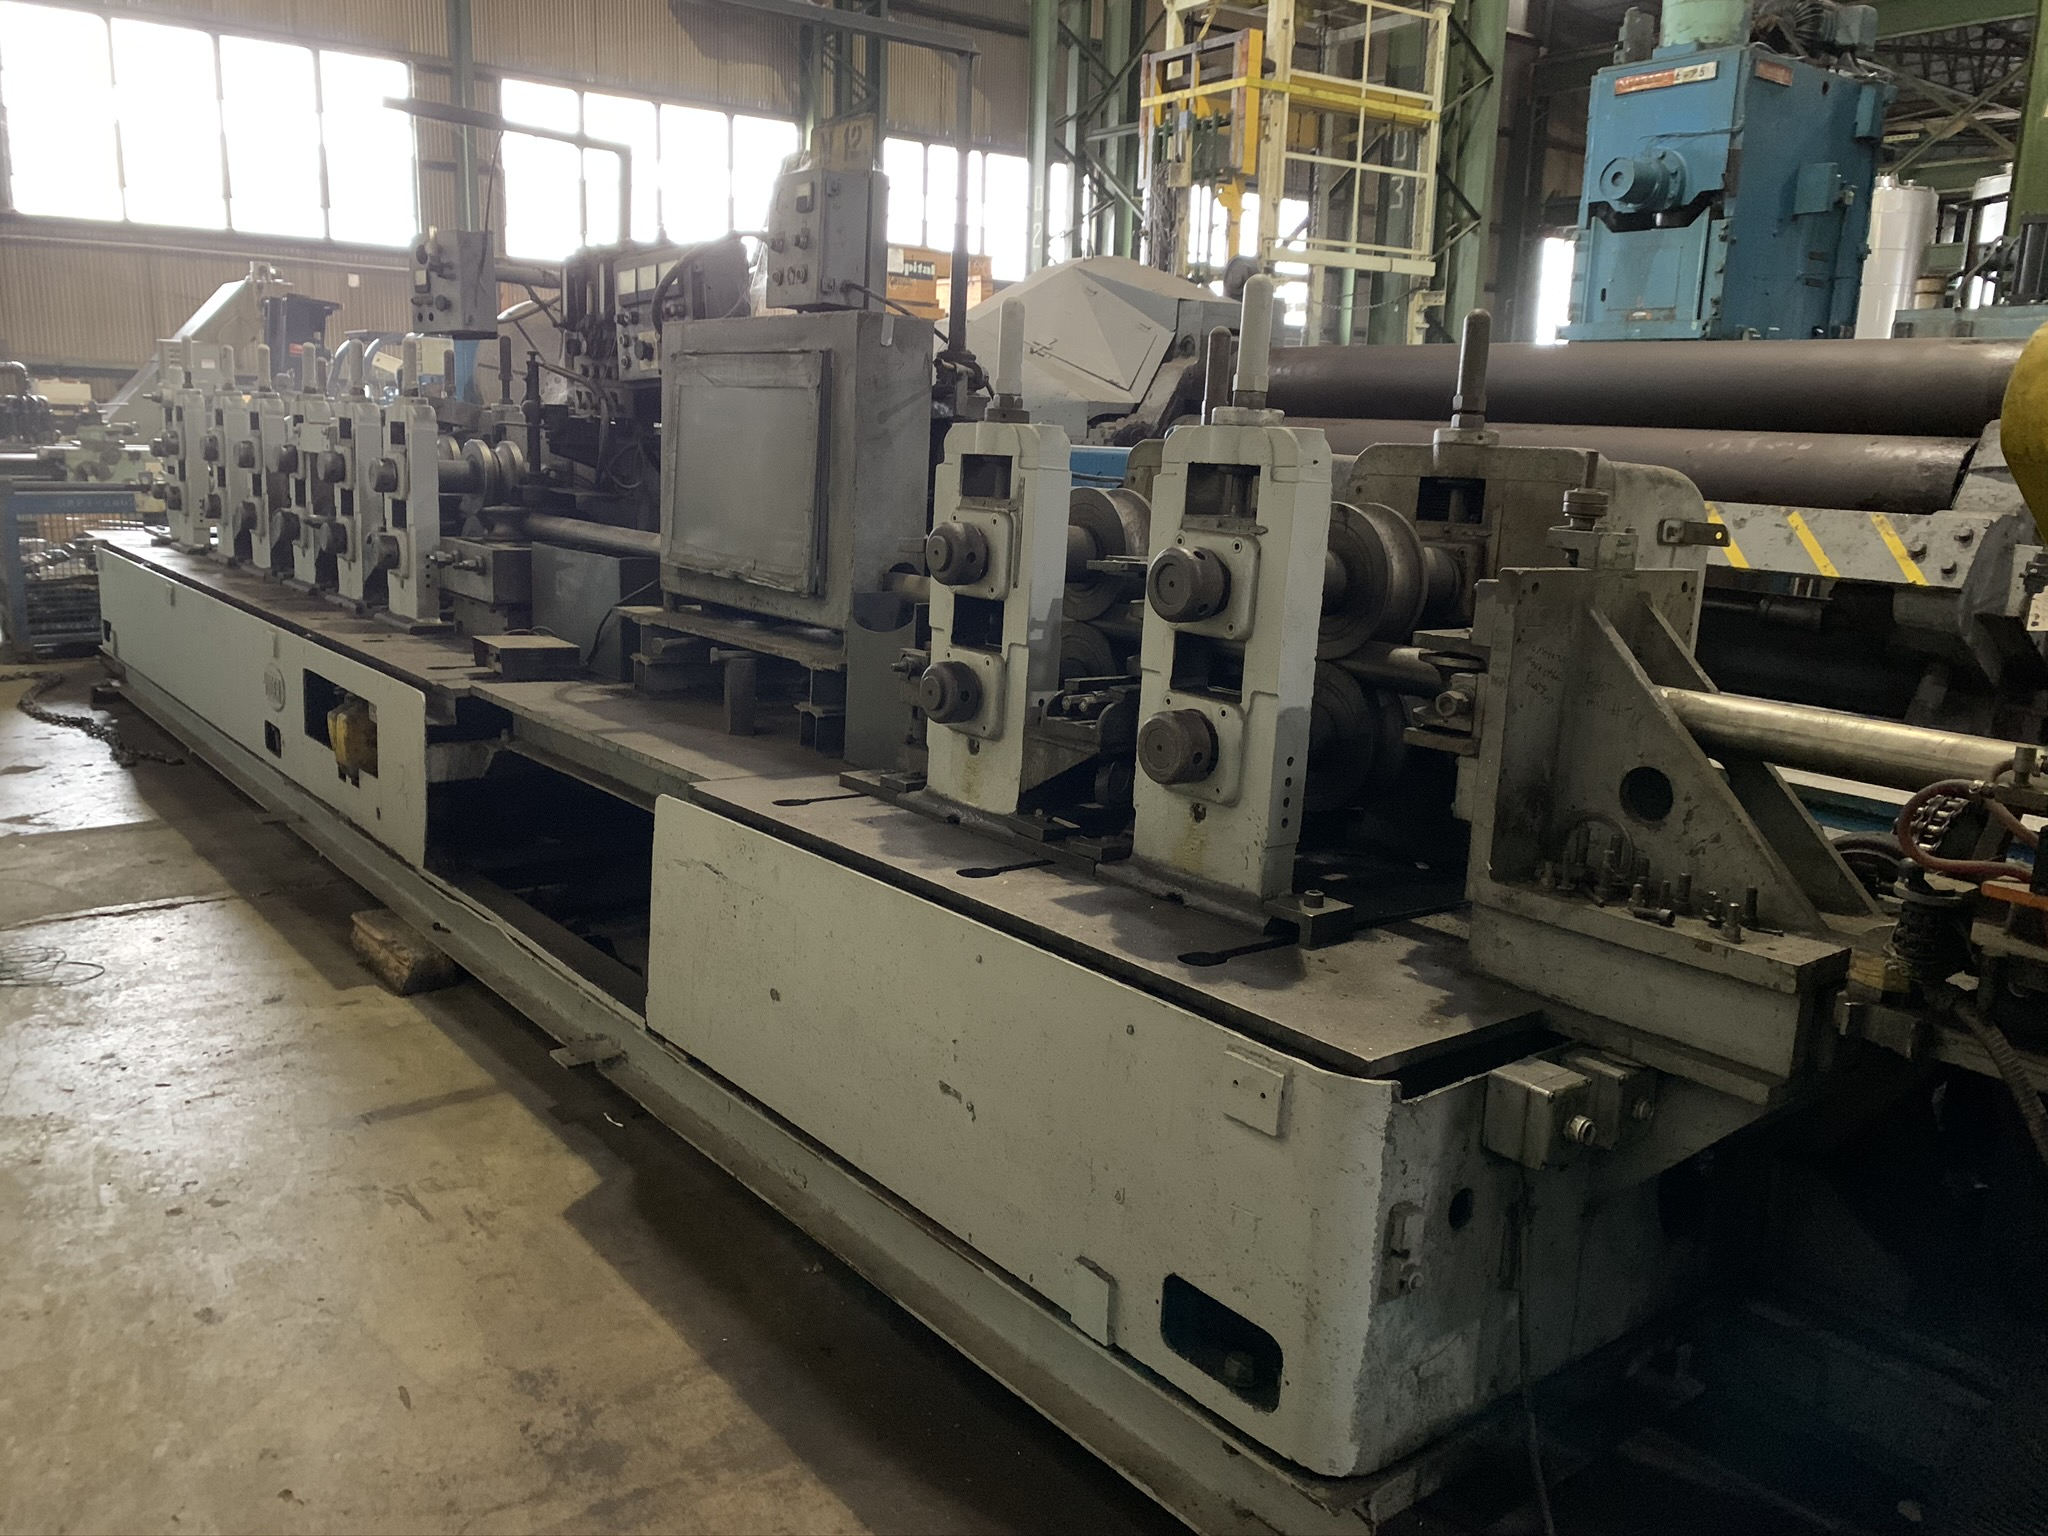 YODER MODEL M3 TUBE MILL; S/N 39774 68259-1, 9-STAND 7-DRIVEN FORMING STANDS, (2) SIZING STANDS,